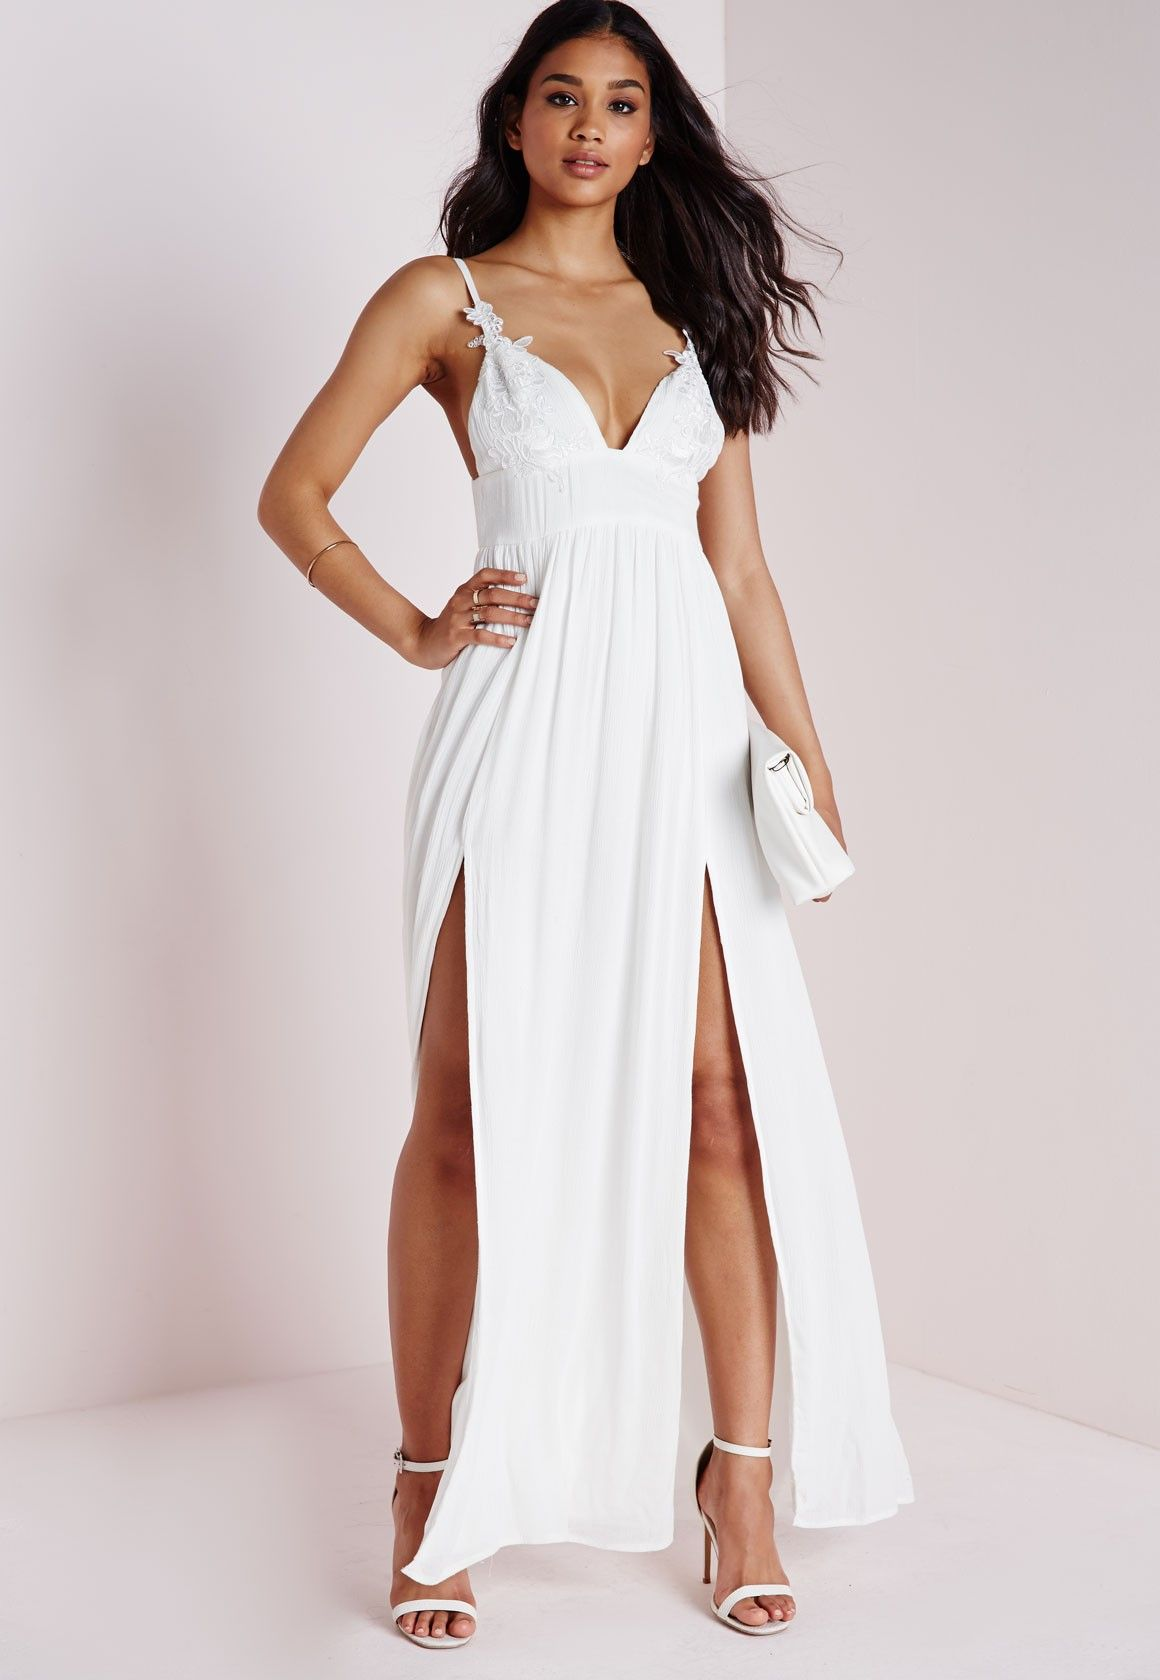 ce7a2059eb3c Cheesecloth Floral Applique Strappy Maxi Dress White - Dresses - Maxi  Dresses - Missguided